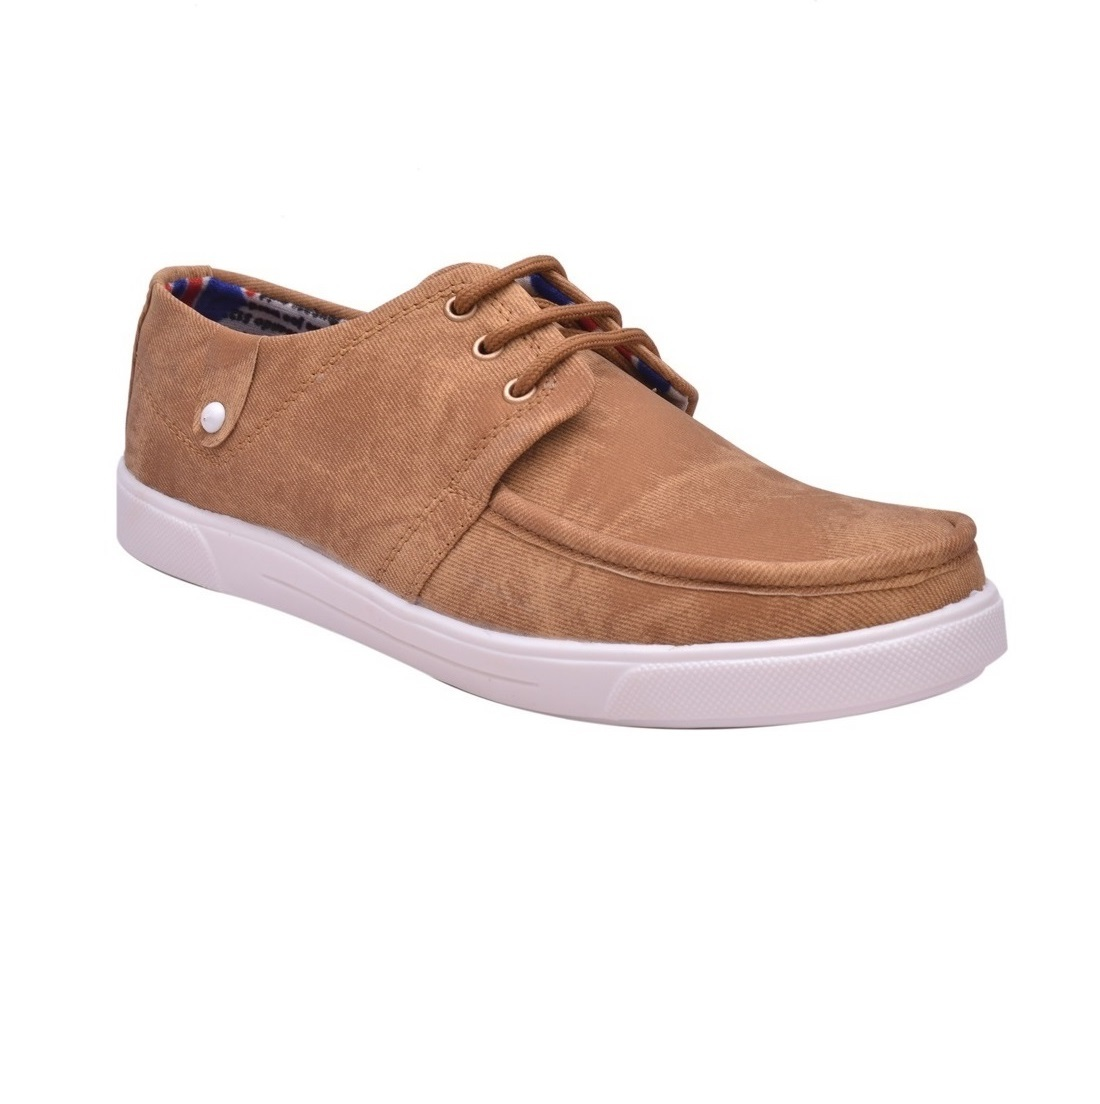 TAN COLOUR CASUAL SHOES FOR MEN'S